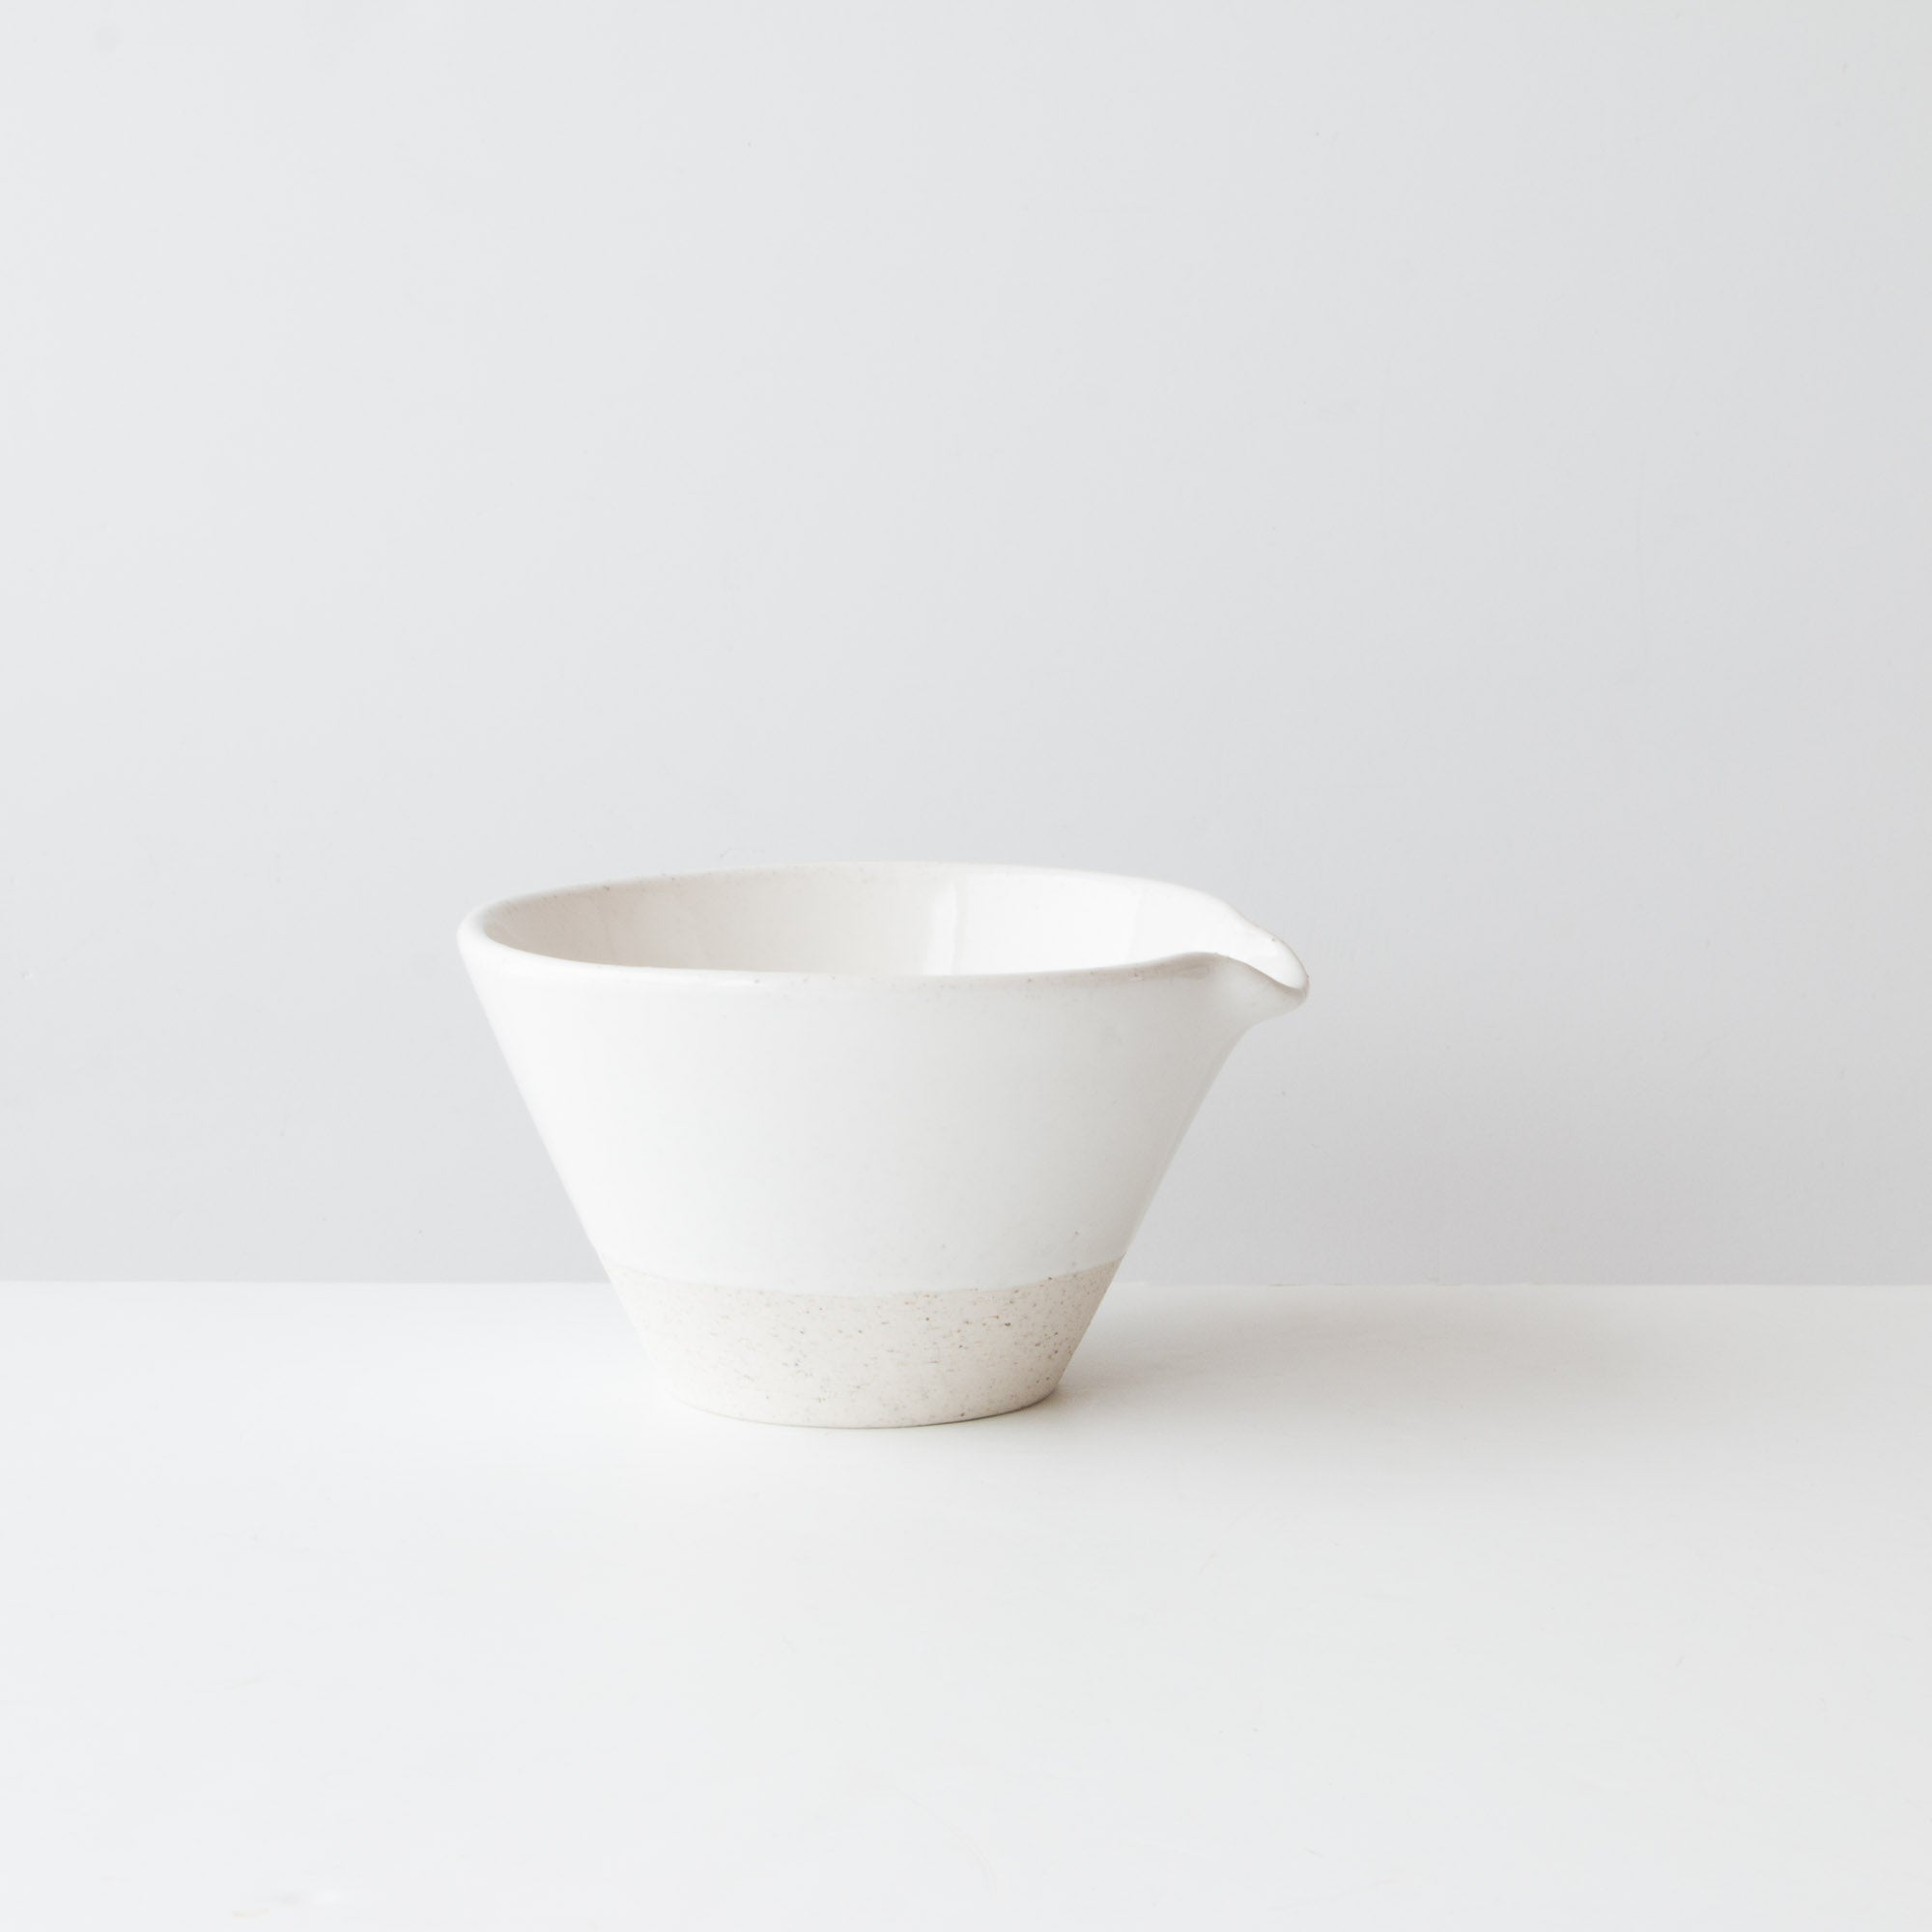 Handmade Two Tone Ceramic Mixing Bowl - 1.5 liter - Sold by Chic & Basta